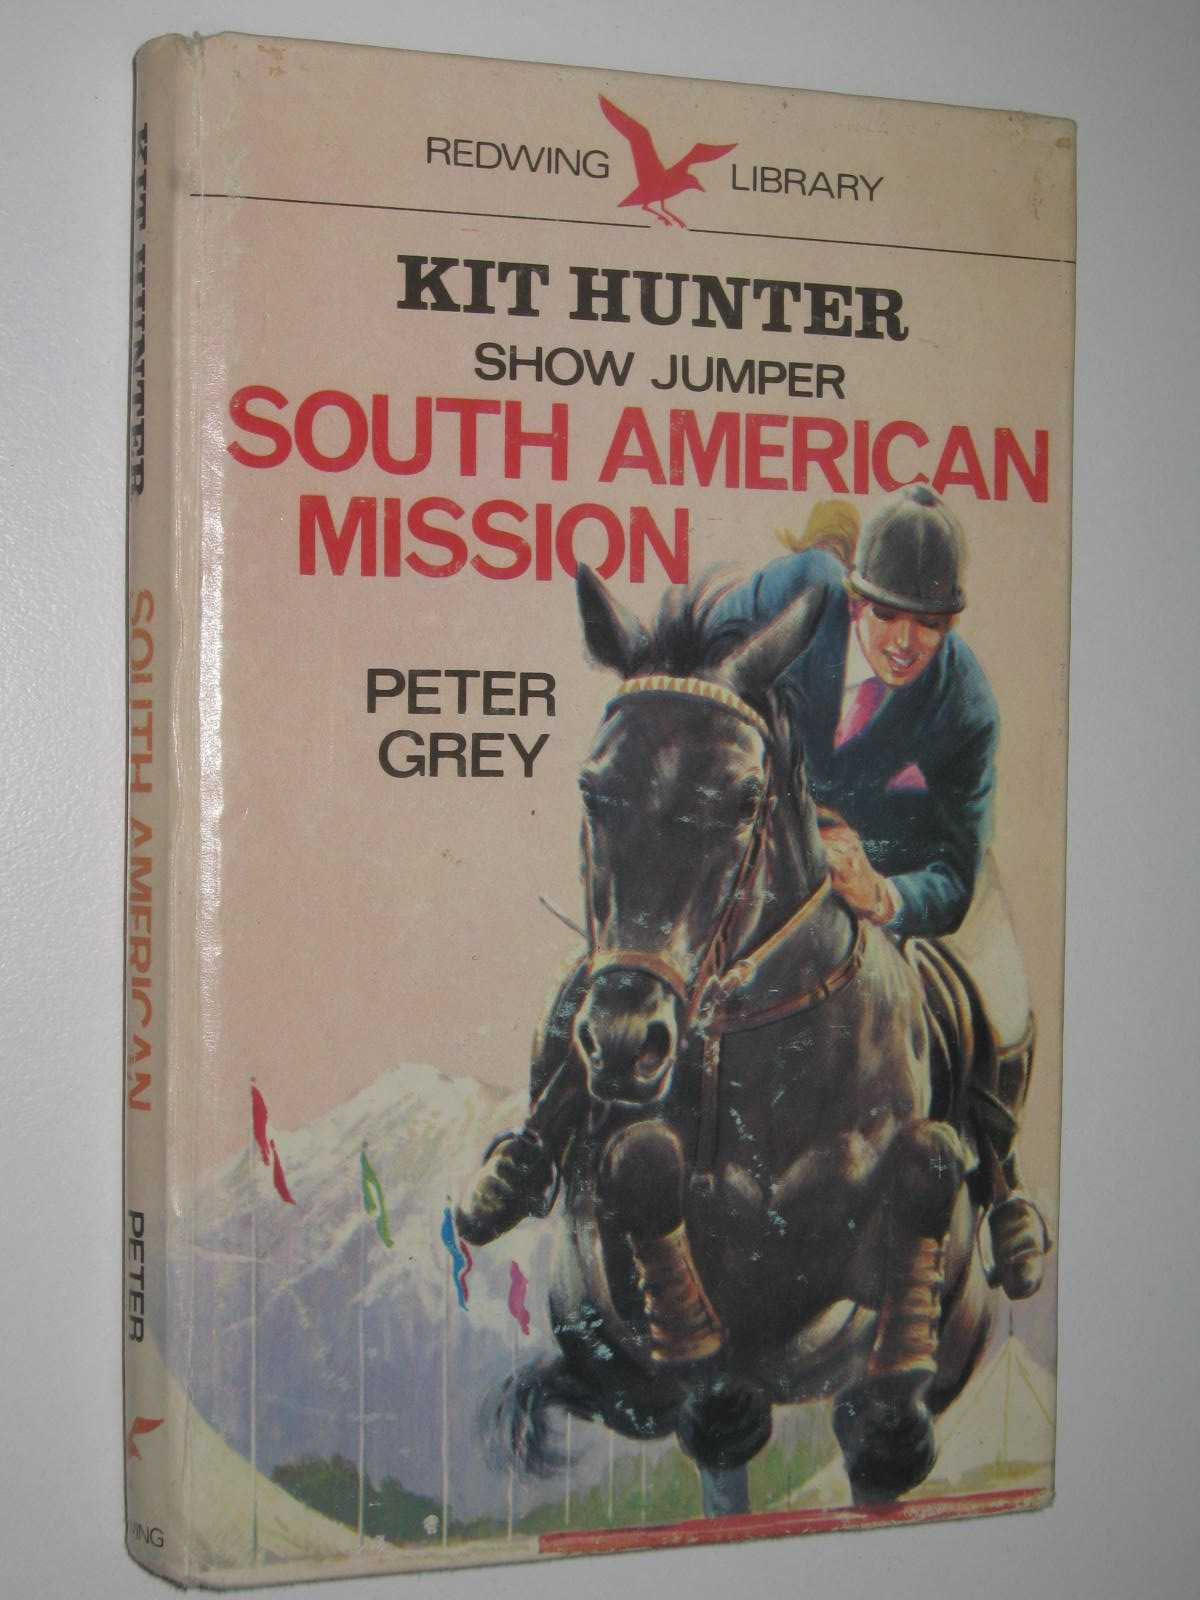 Image for South American Mission - Kit Hunter Show Jumper Series #2